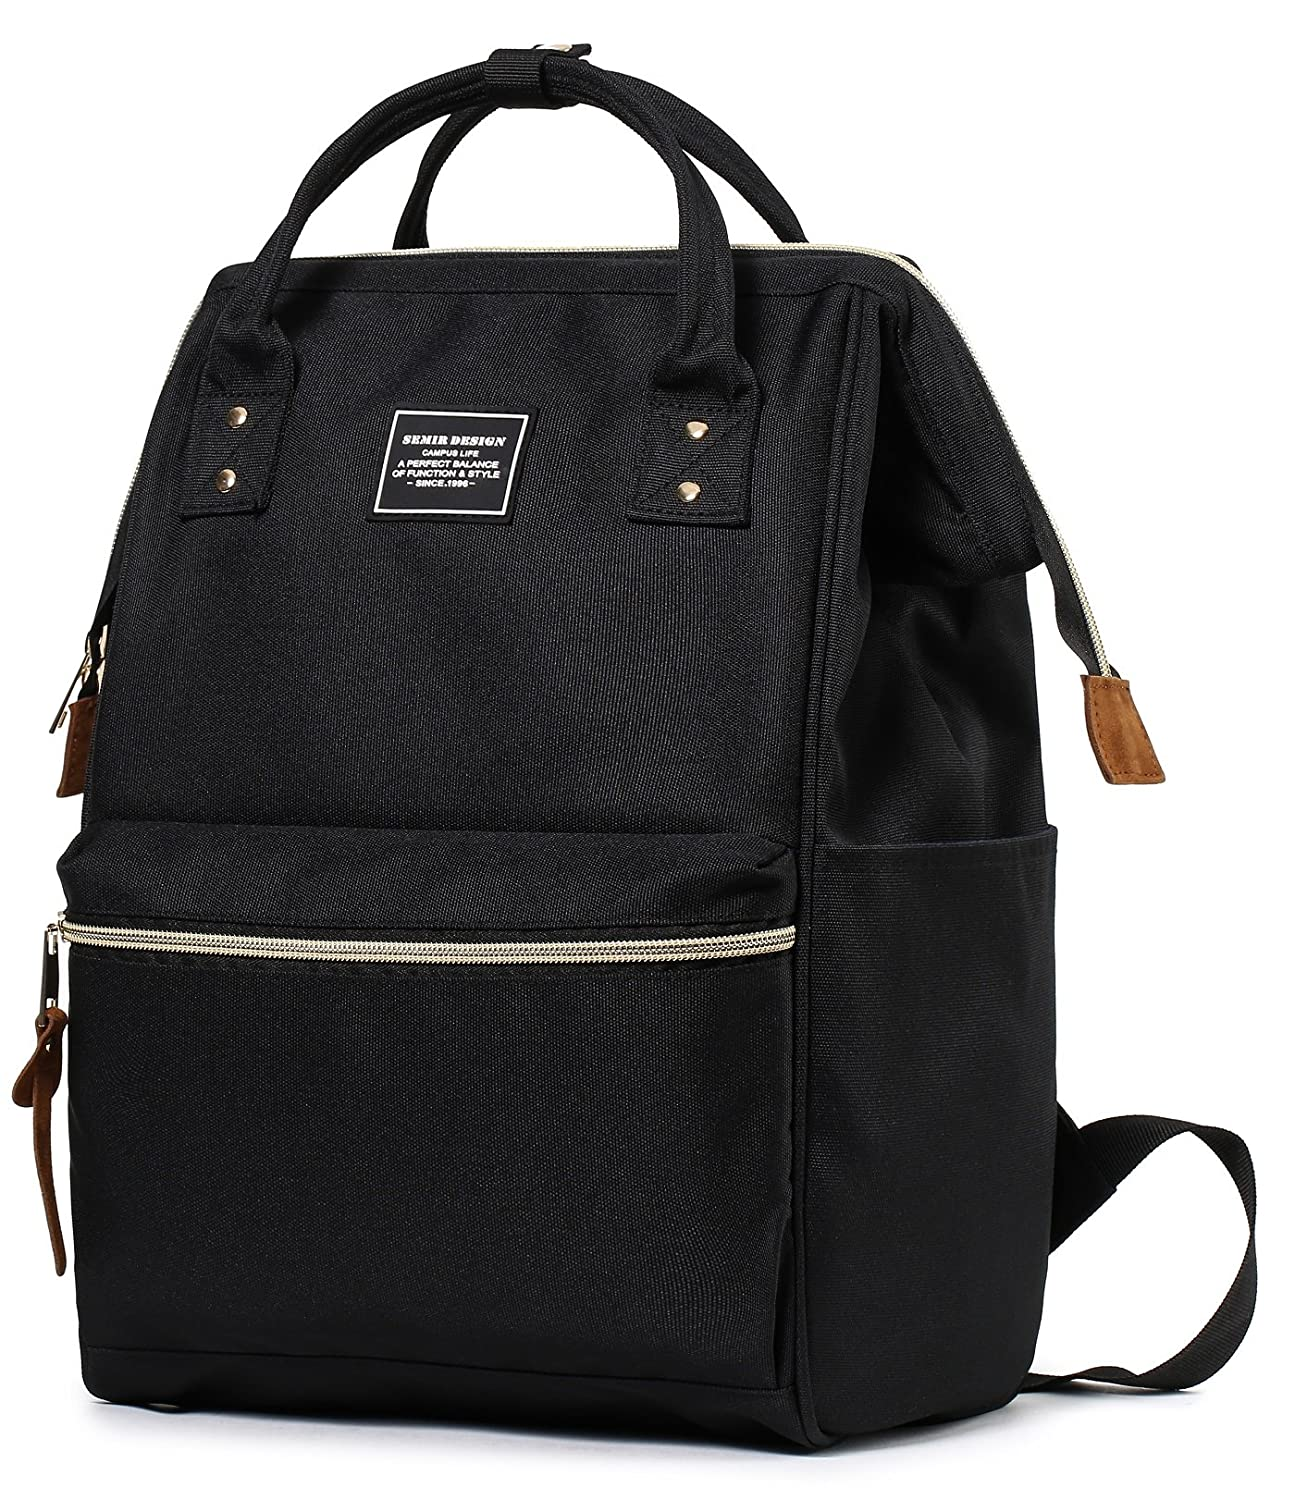 8f82134039b5 SEMIR 13 Inch Fashion Stylish Ladies Computer Best Business Travel Picnic  College Backpacks...